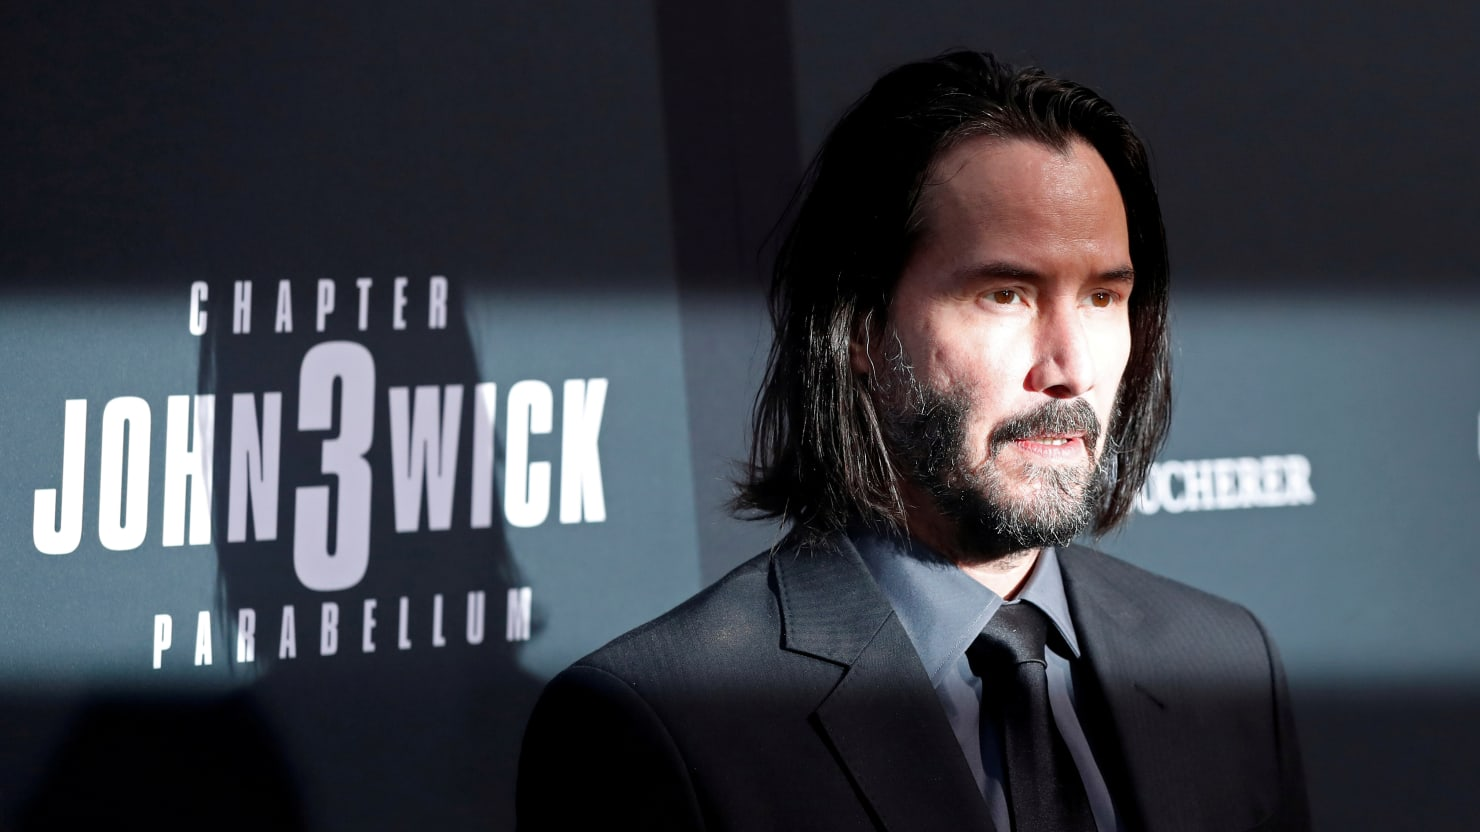 'John Wick 3 — Parabellum' Ends 'Avengers: Endgame' Three Week Reign at Box Office